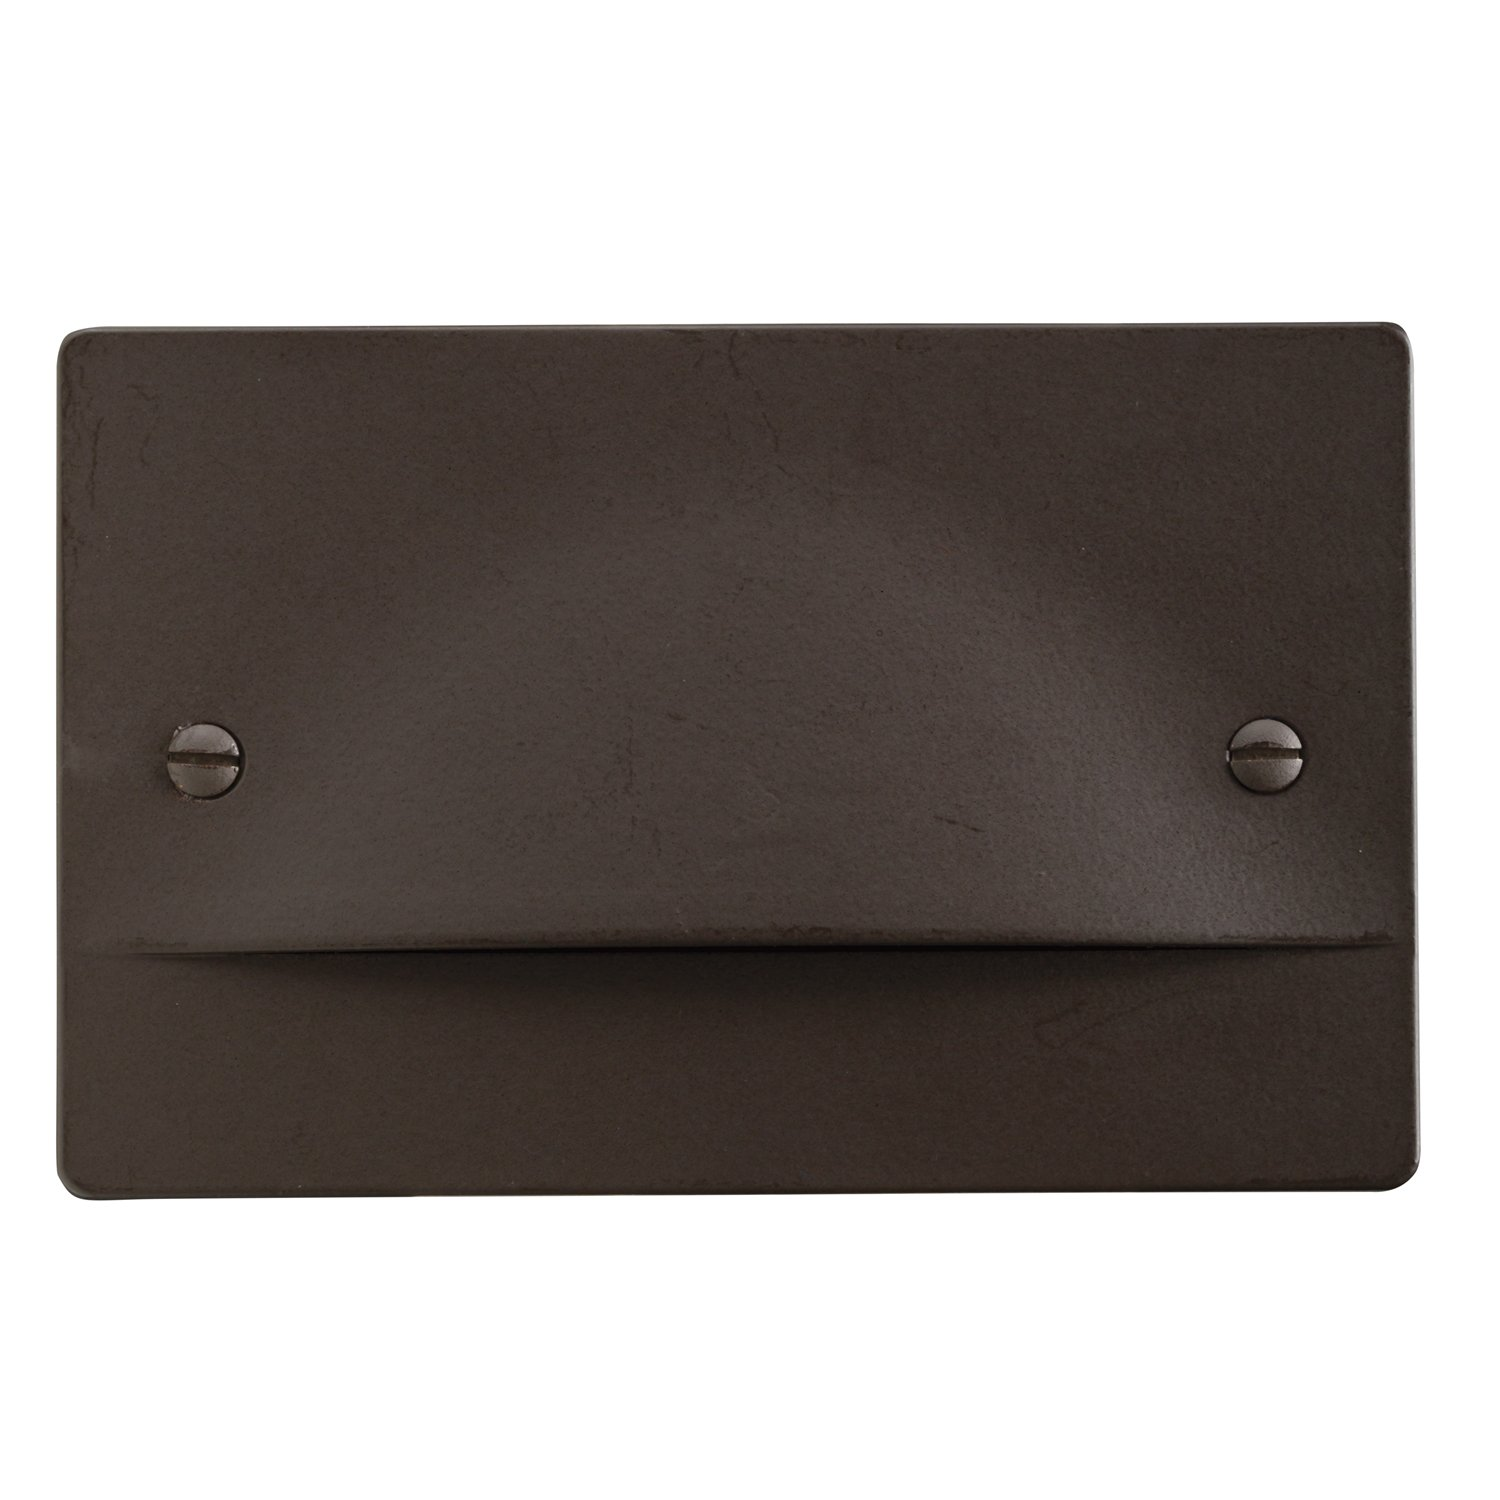 Kichler 12662AZ Step and Hall 120V LED Step Light Non-Dimmable, Architectural Bronze